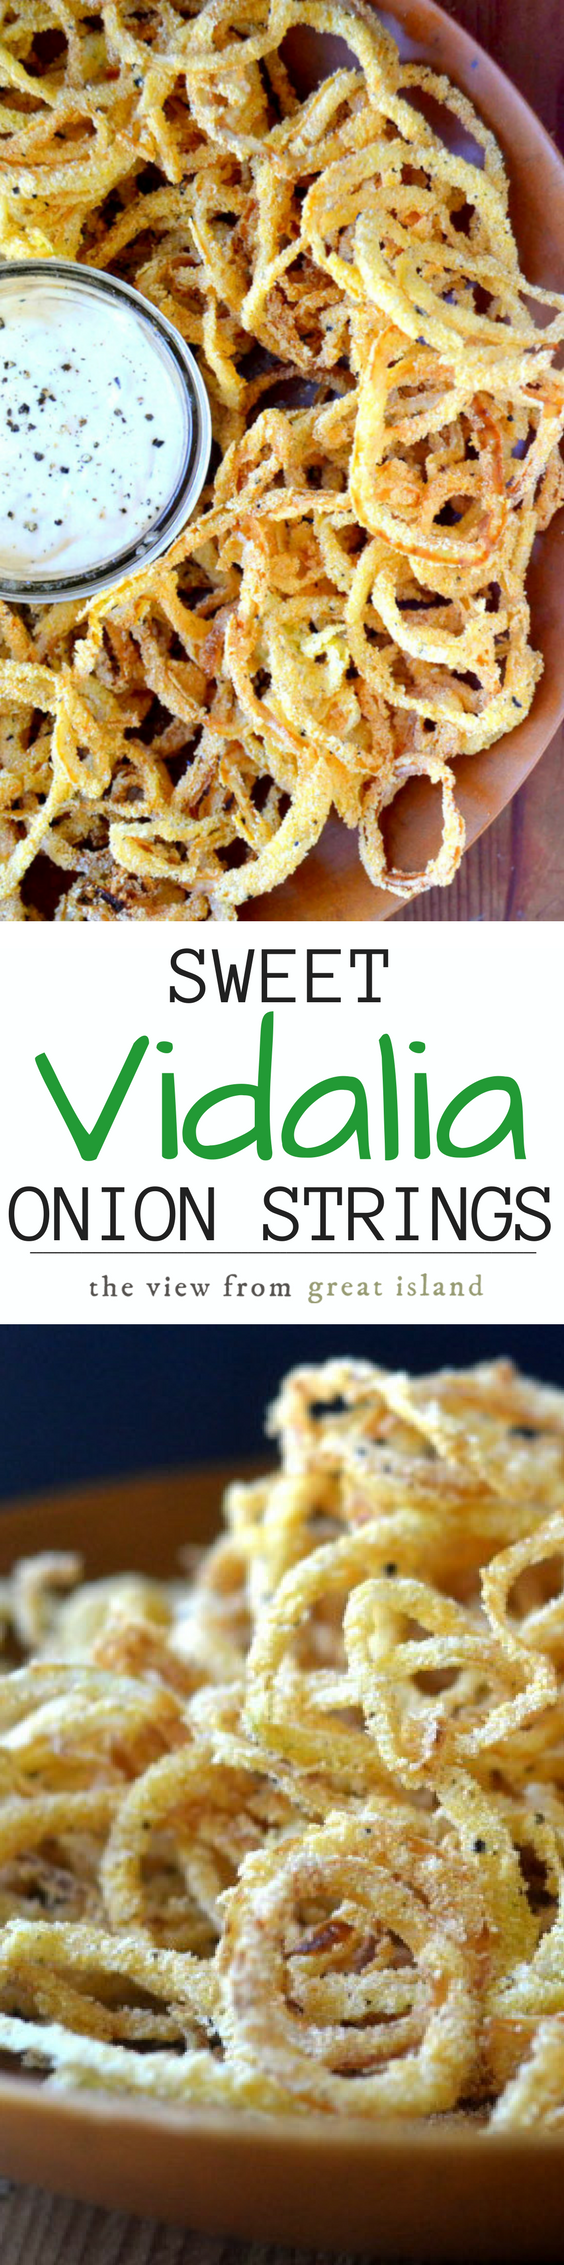 Vidalia Onion Strings with Horseradish Aioli might just be the world's most perfect appetizer, these thin sweet onions rings are fried to perfection in minutes! | sweet onions | onion rings | easy appetizer | game night |